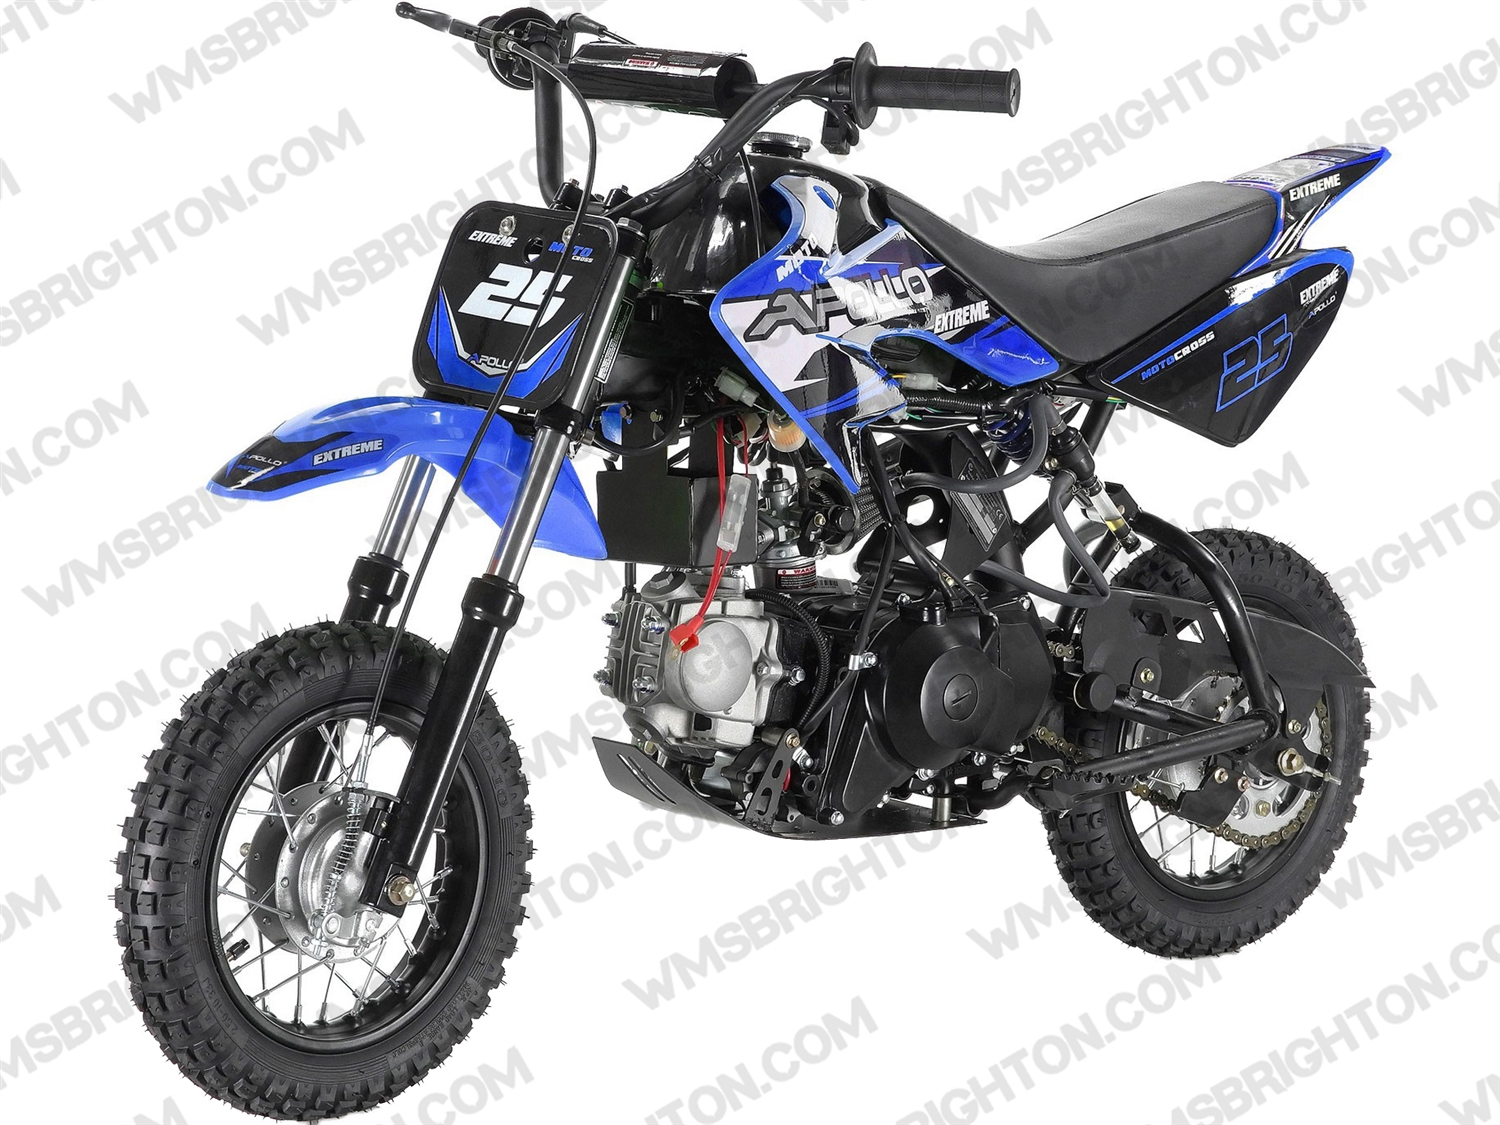 70cc Pit Bike Engine Diagram Get Free Image About Find Into Frequency Modulator Http Wwwelectroschematicscom 889 Fmmodulator Apollo Db 25 Full Auto Electric Start Dirt Rh Wmsbrighton Com